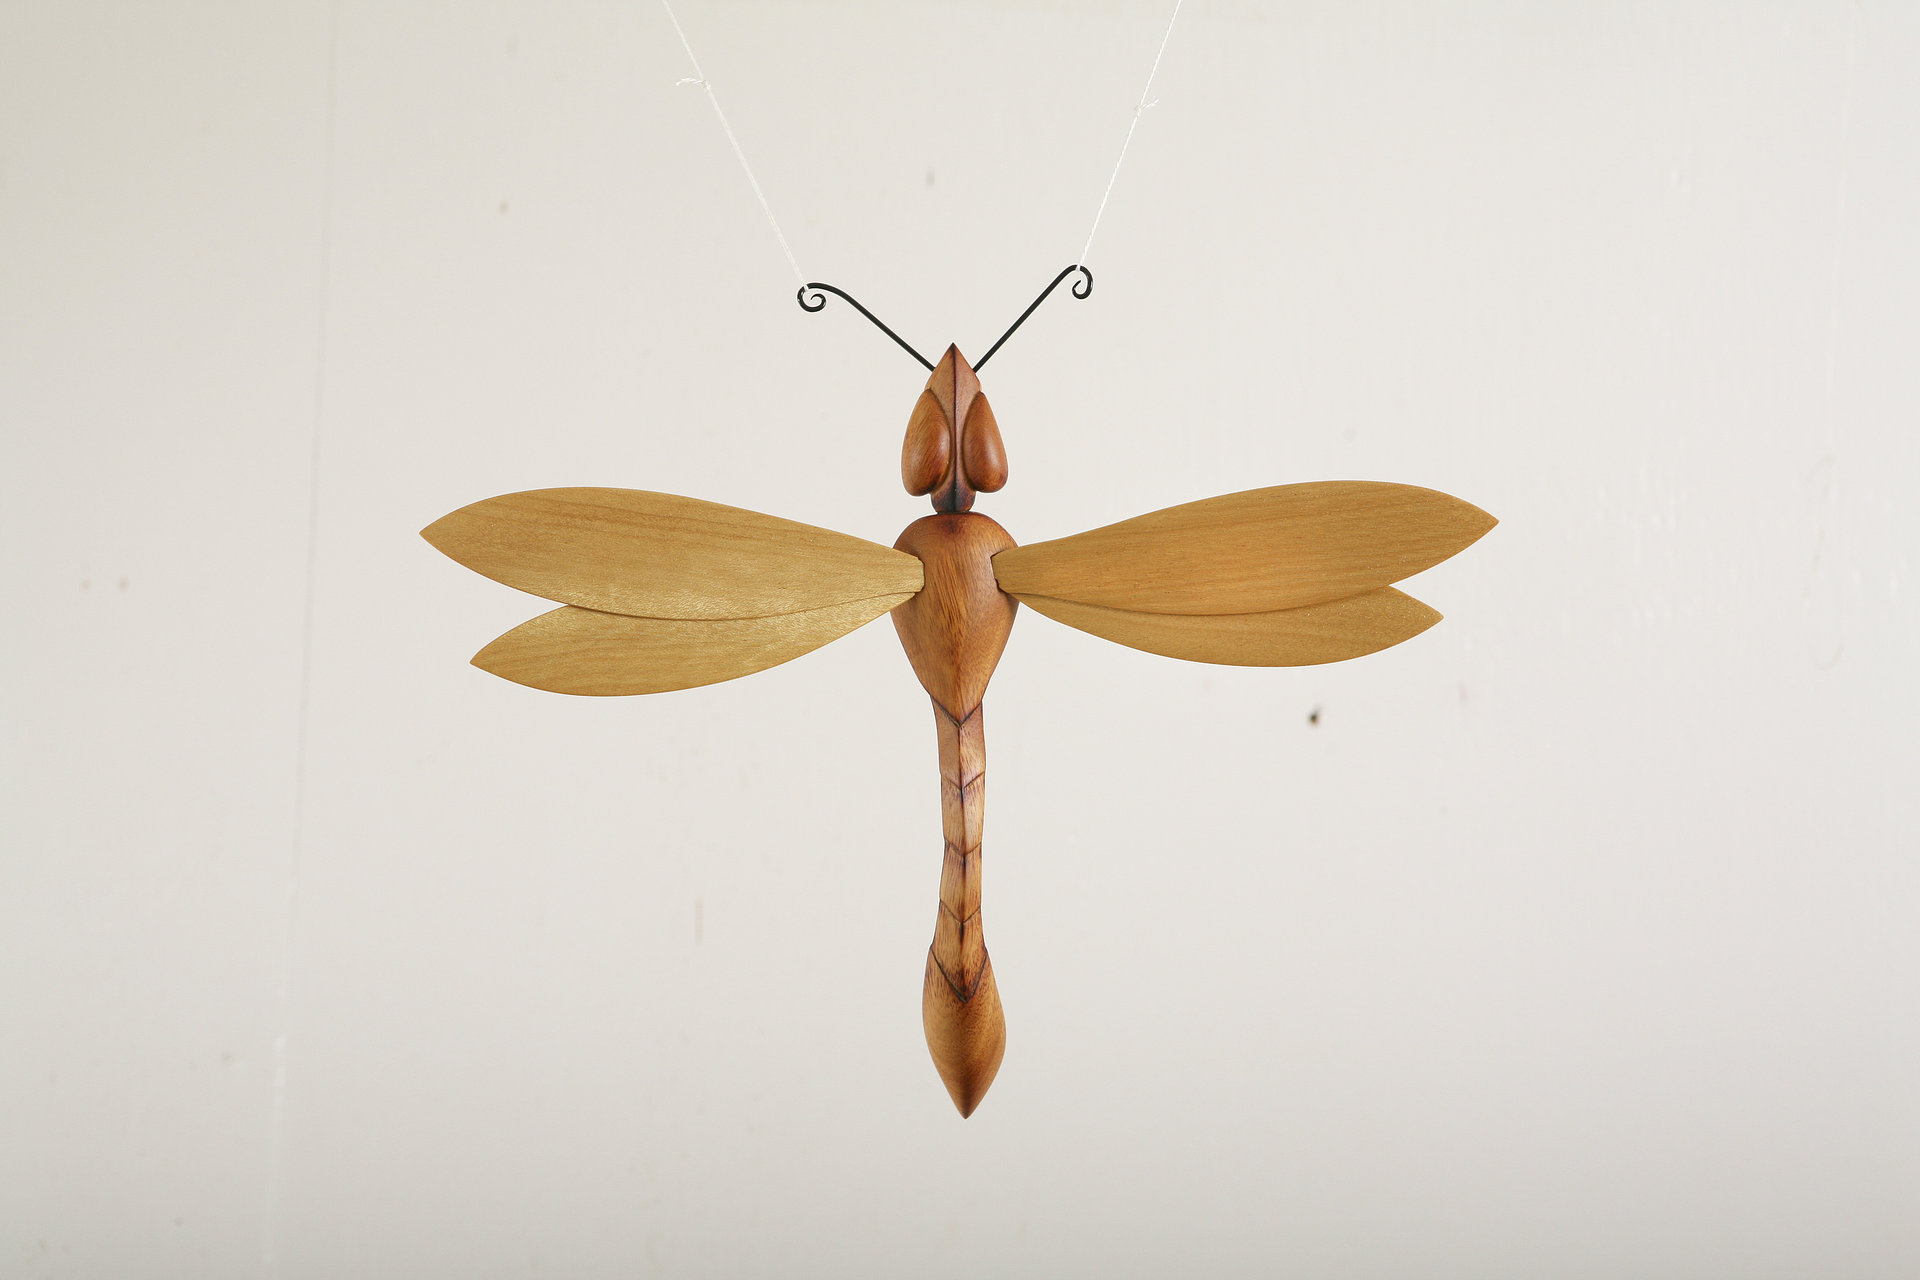 Wooden Dragonfly Sculpture